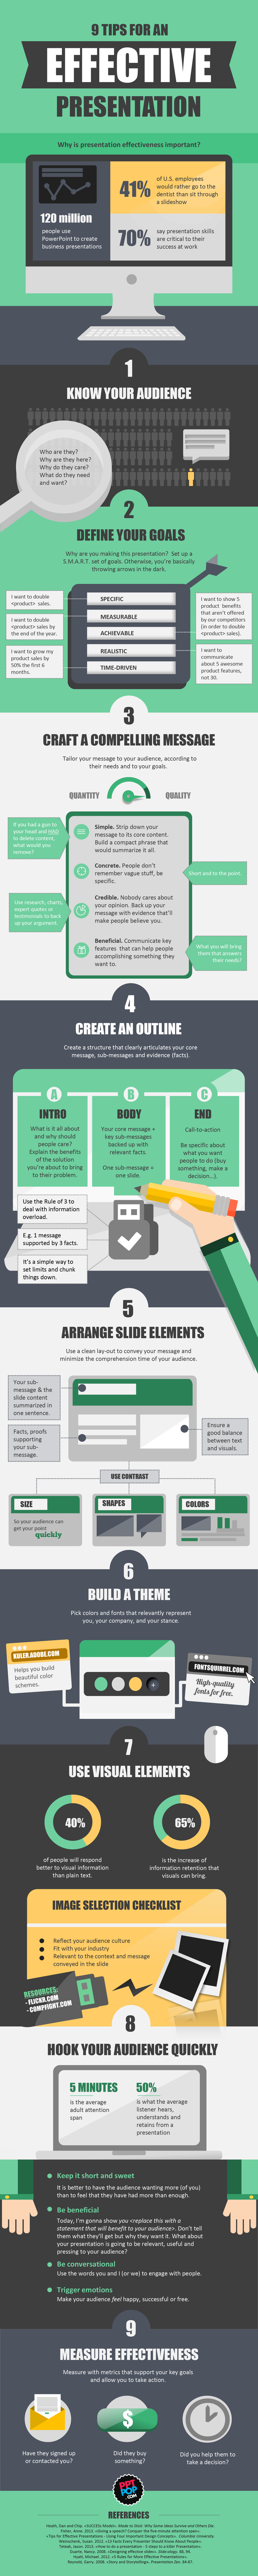 9 Tips for an Effective Presentation #infographic